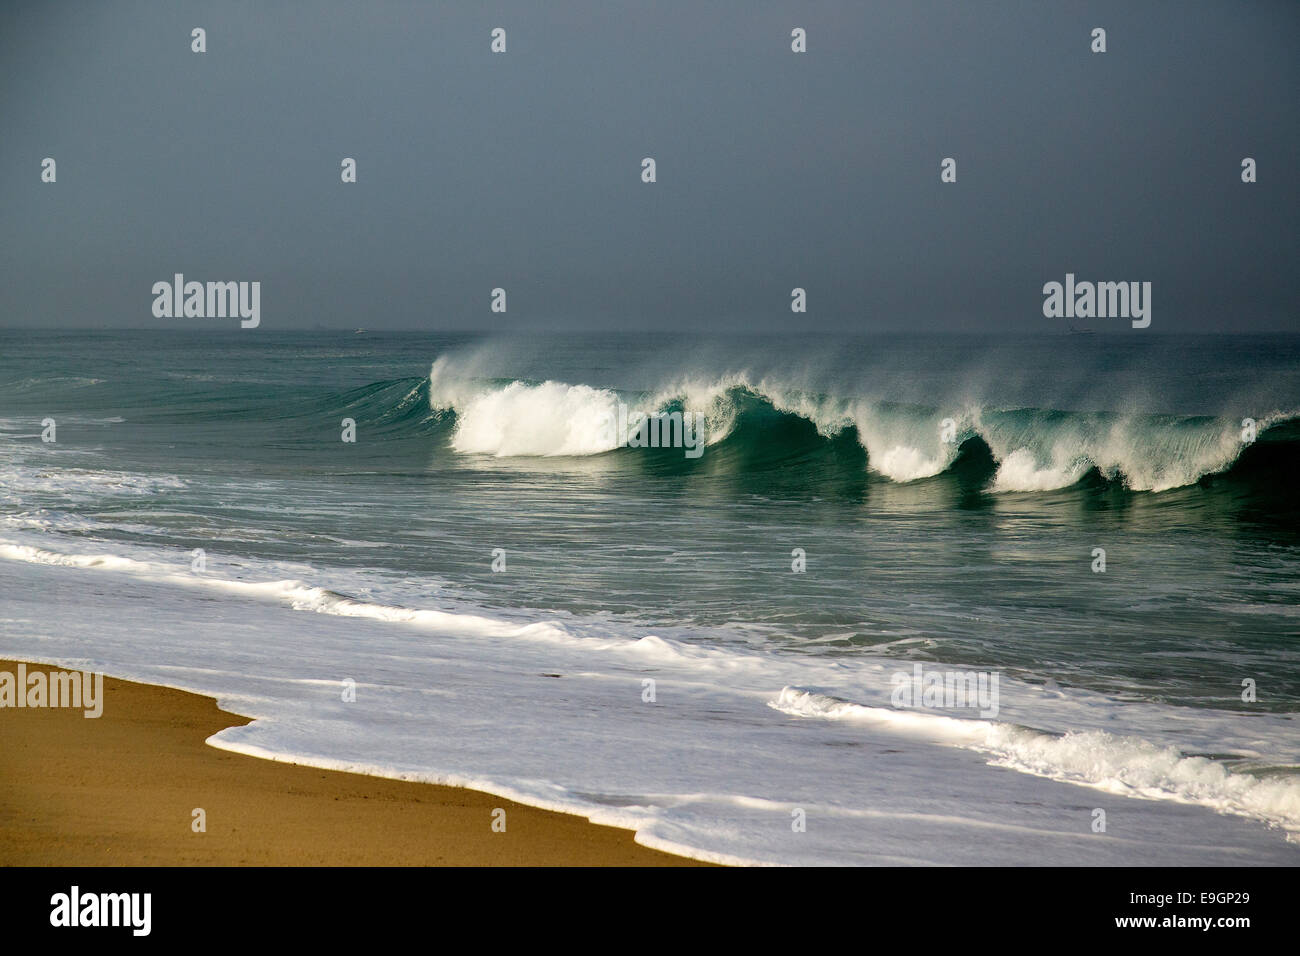 Wave breaking on beach shore. - Stock Image